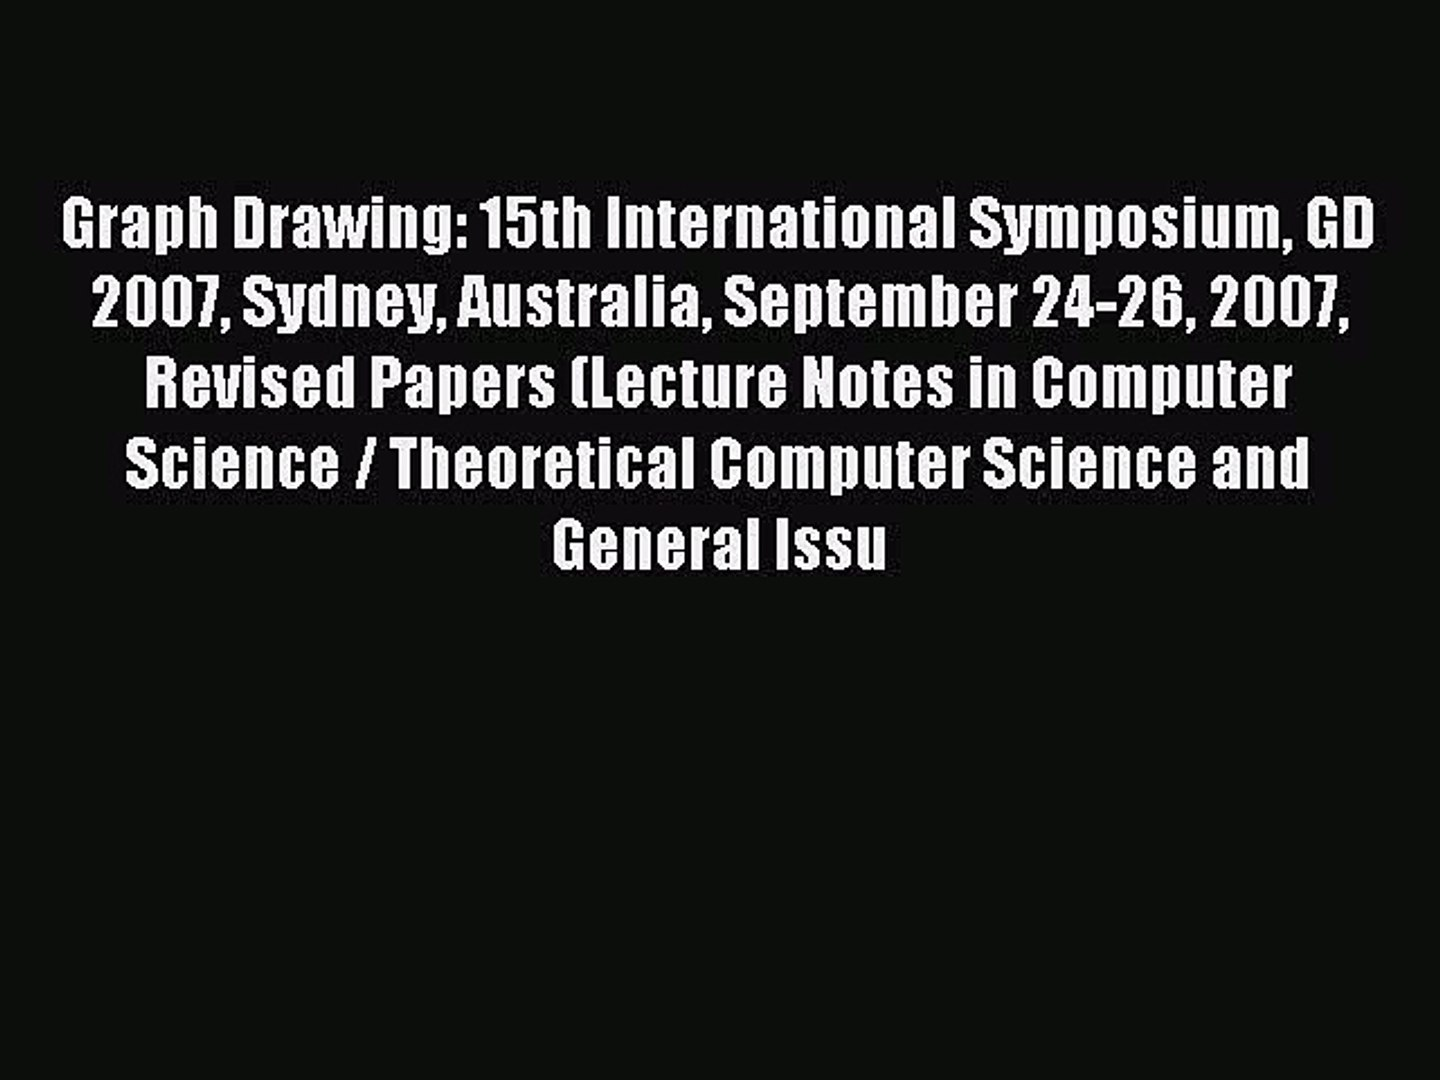 Read Graph Drawing: 15th International Symposium GD 2007 Sydney Australia September 24-26 2007